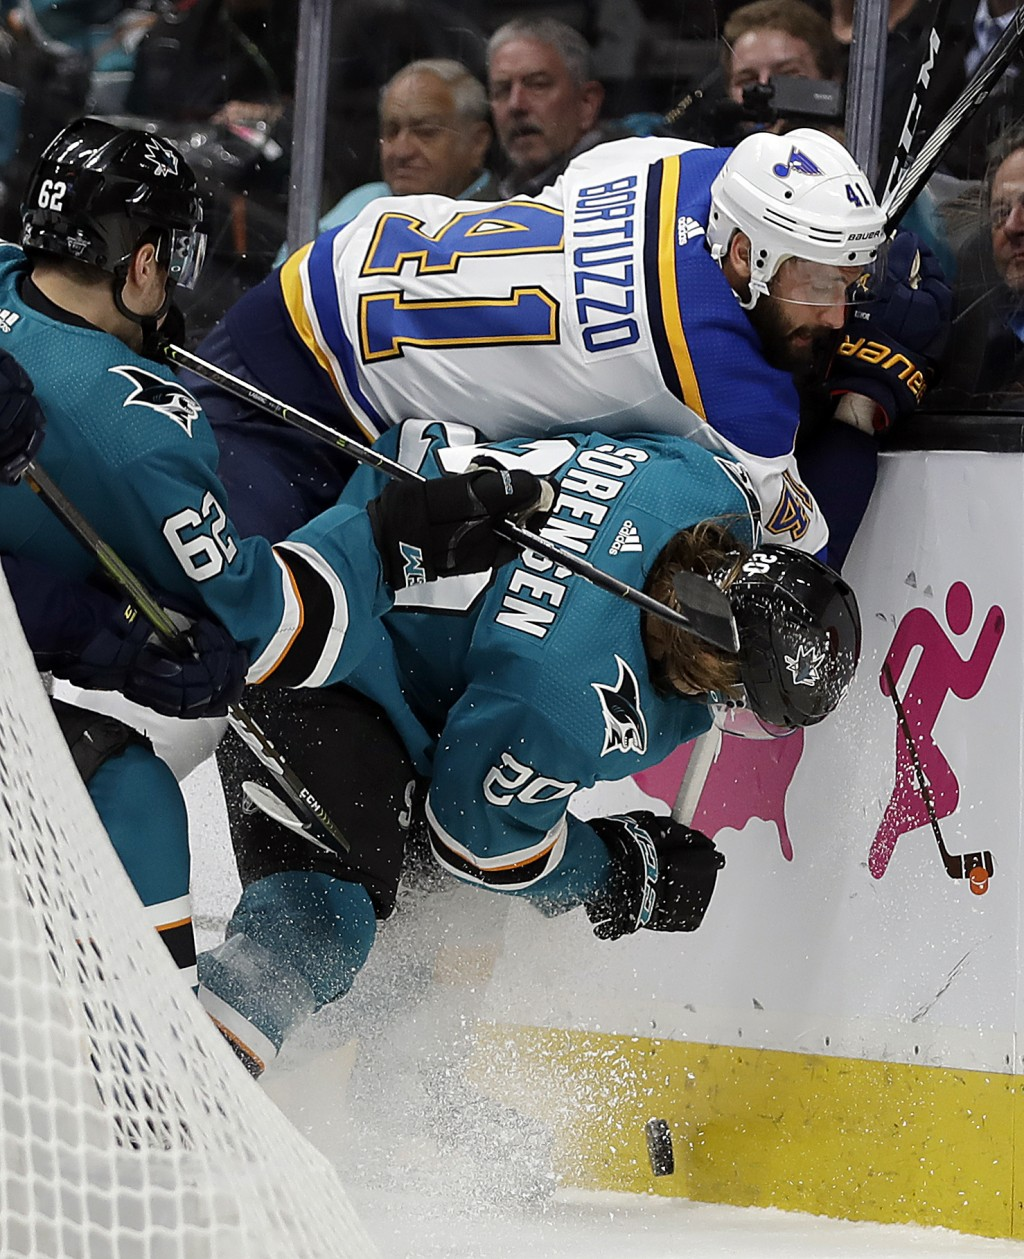 St. Louis Blues' Robert Bortuzzo (41) fights for the puck with San Jose Sharks' Kevin Labanc, left, and Marcus Sorensen (20) during the first period i